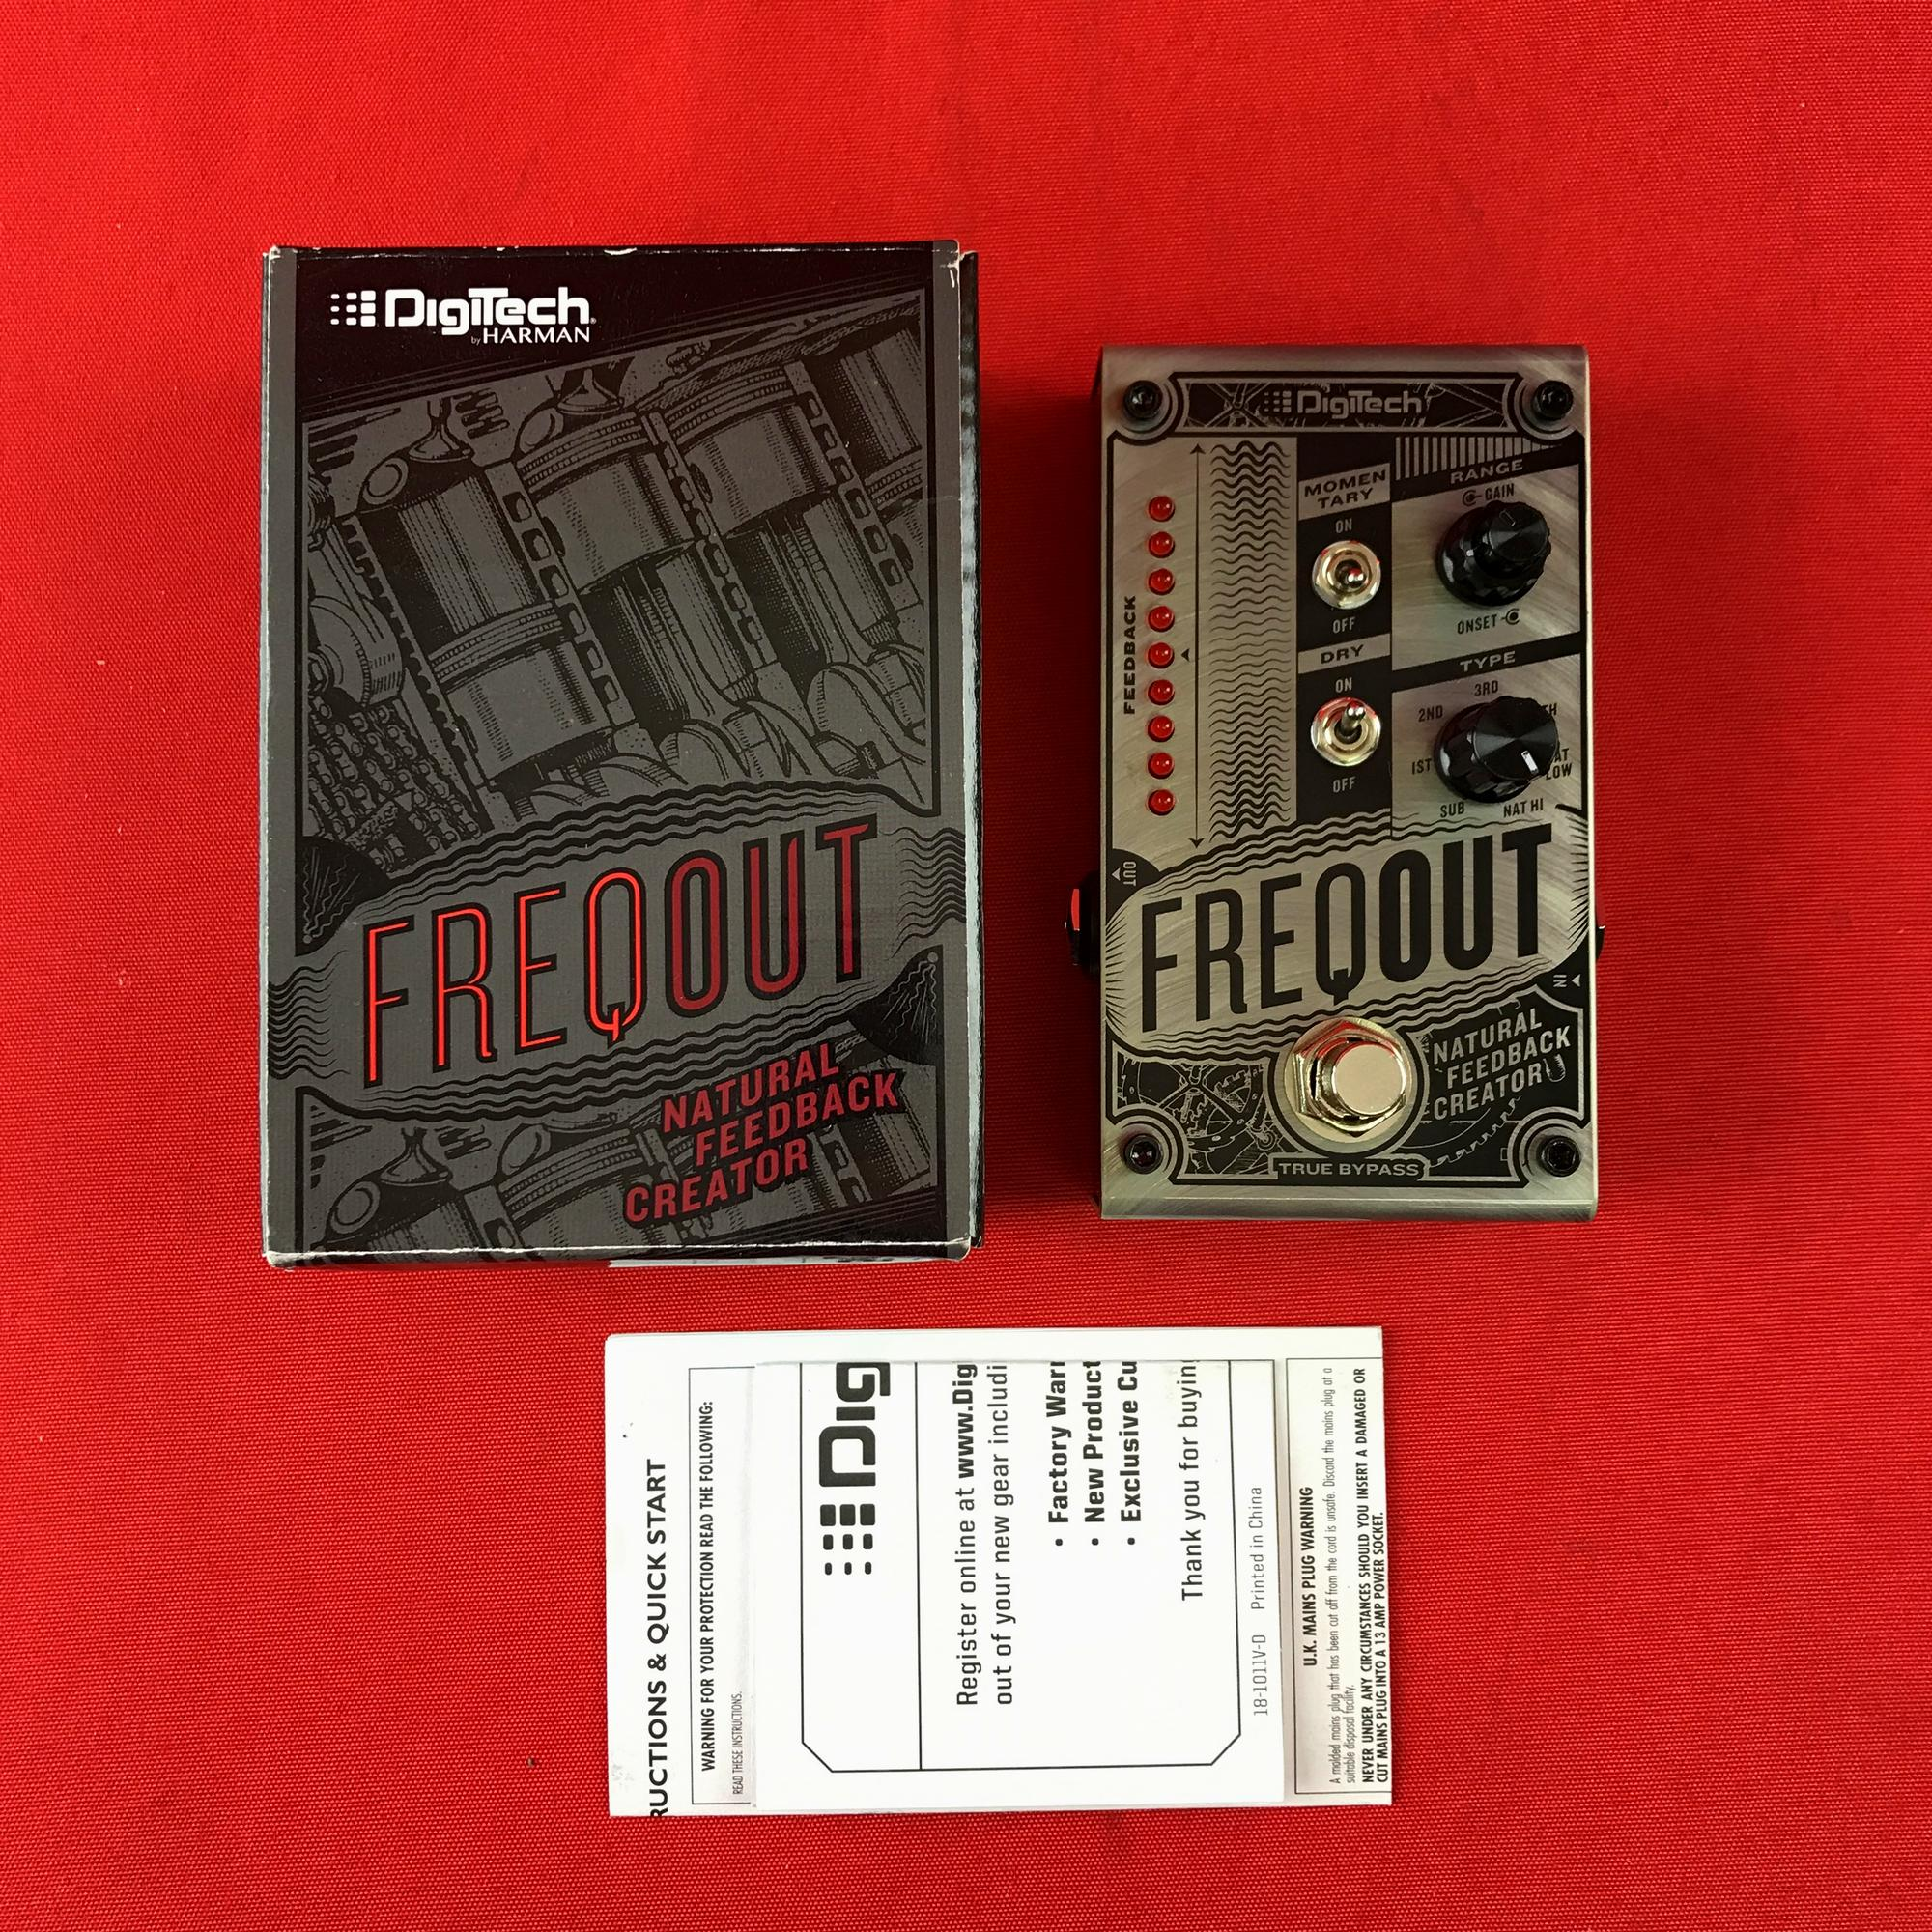 [USED] DigiTech FreqOut Natural Feedback Creation